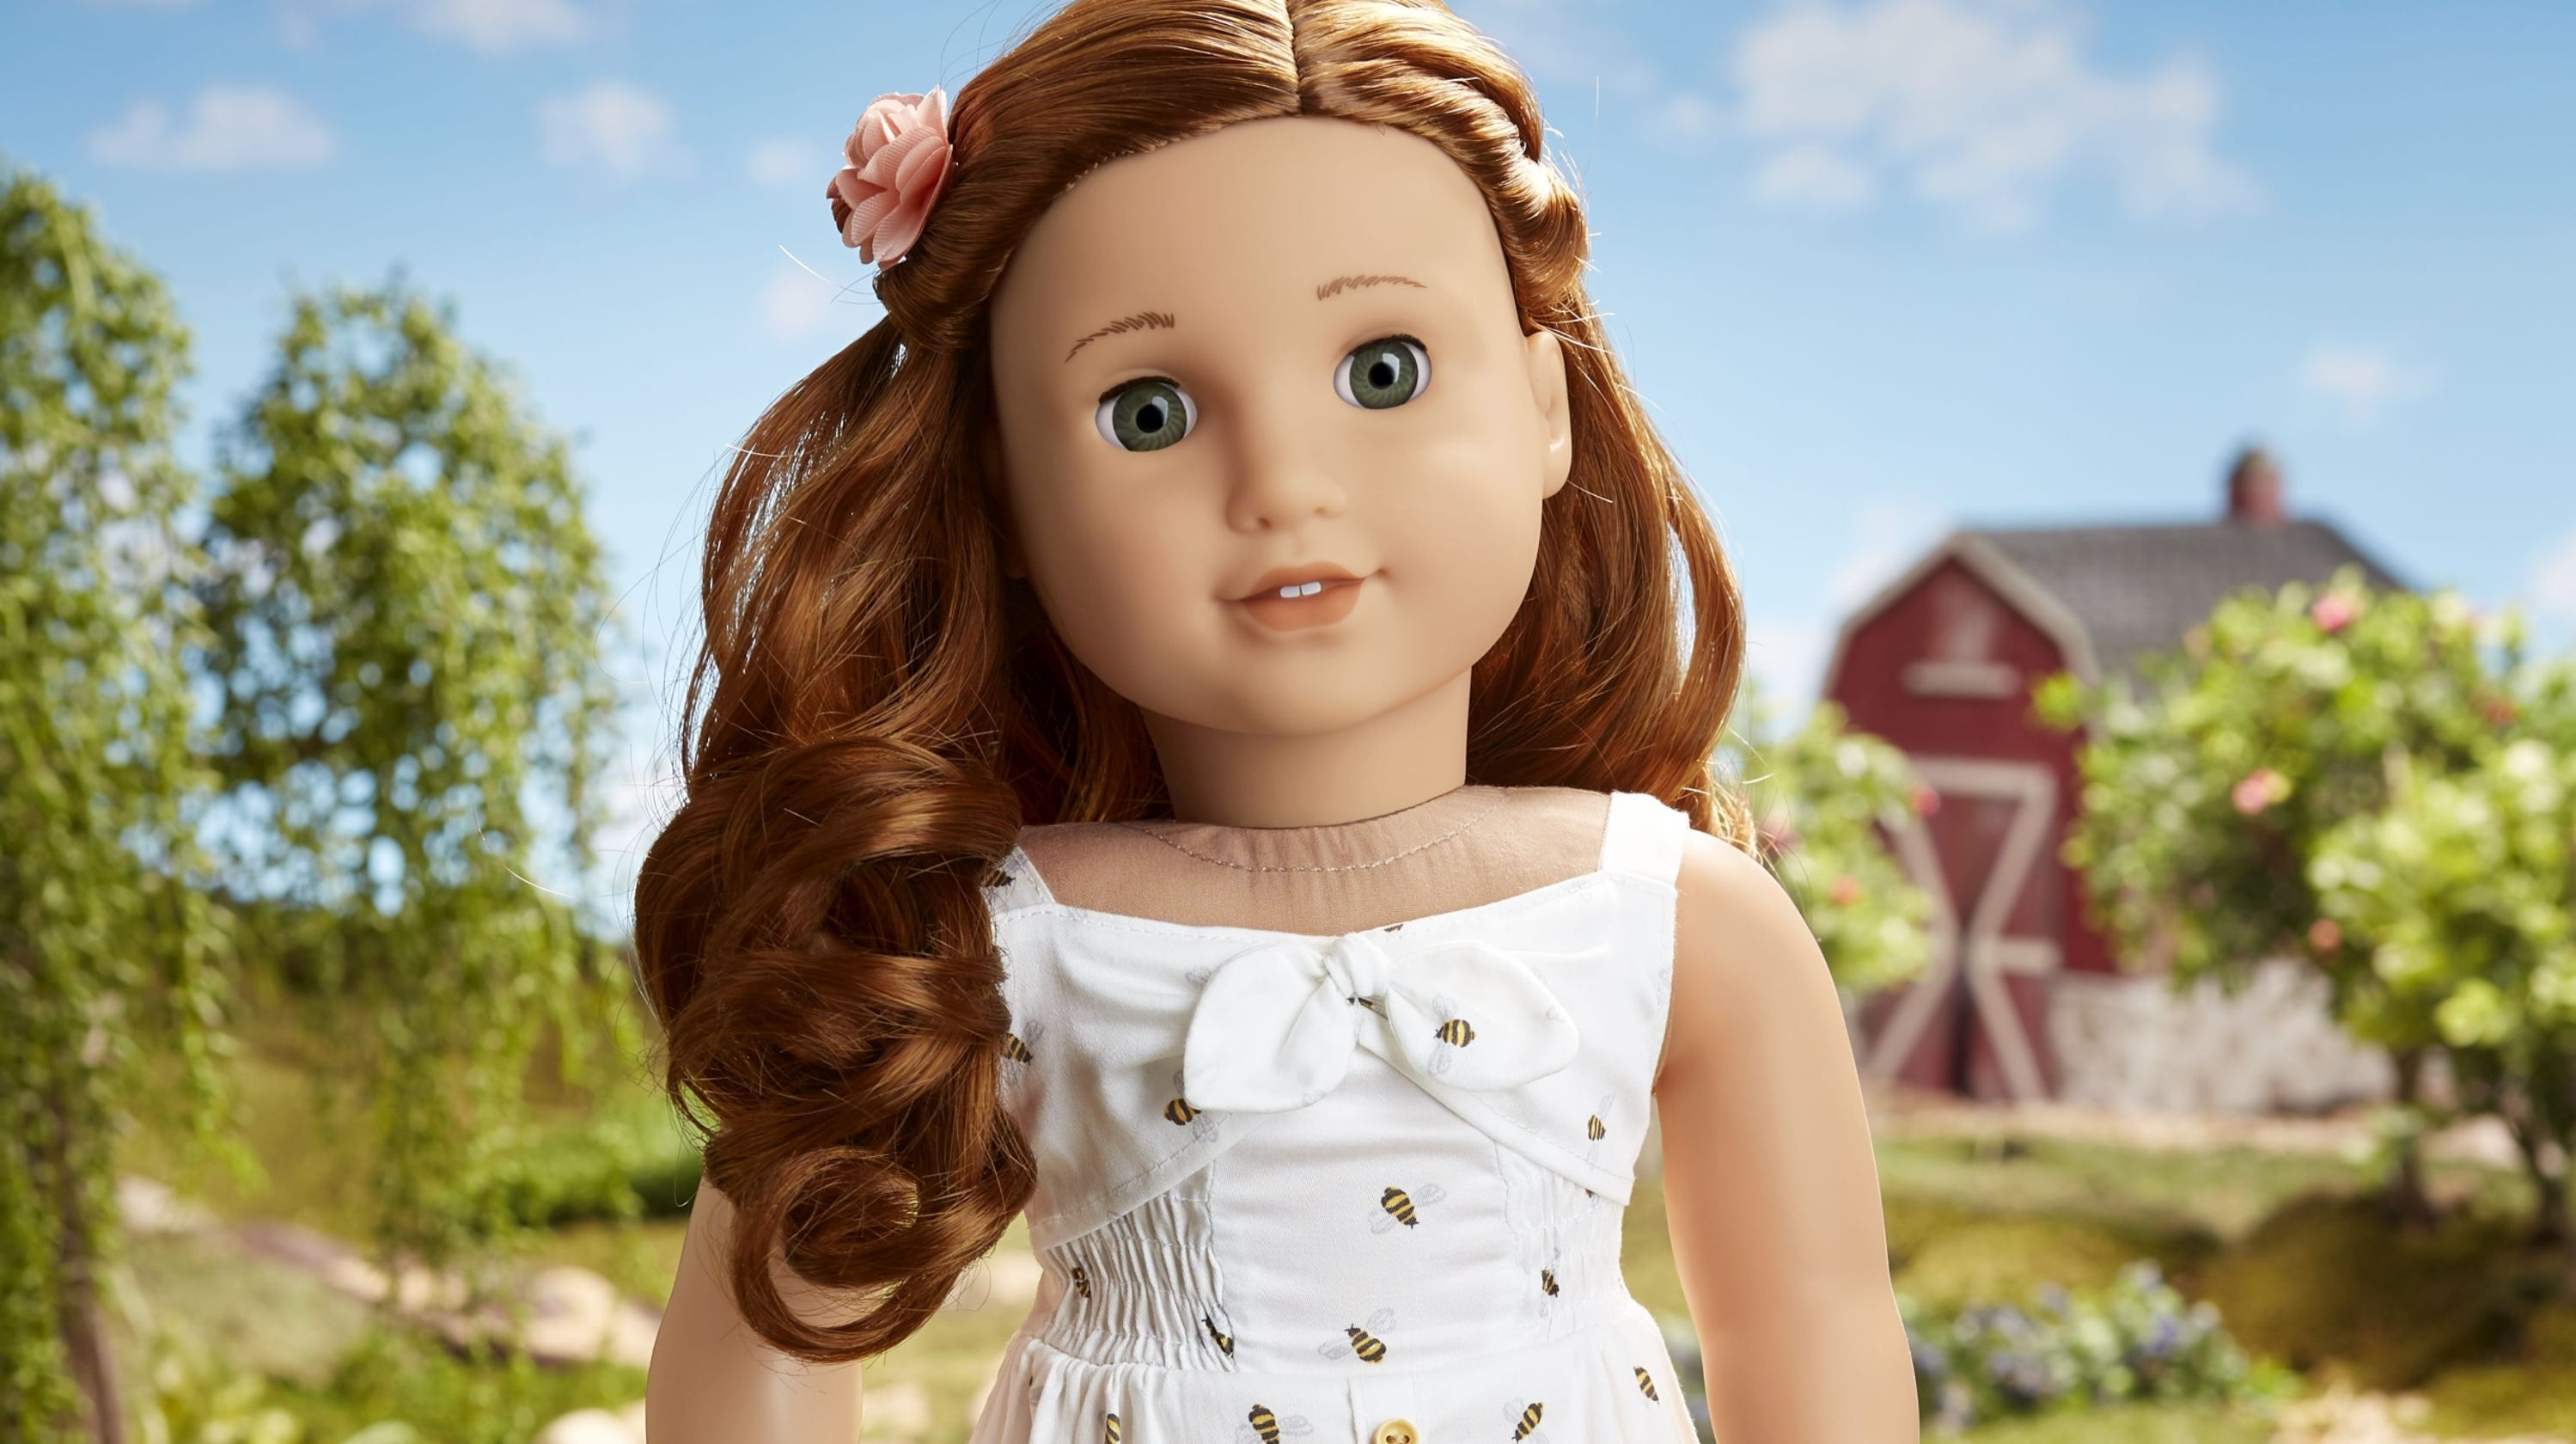 meet american girl s 2019 doll of the year blaire wilson